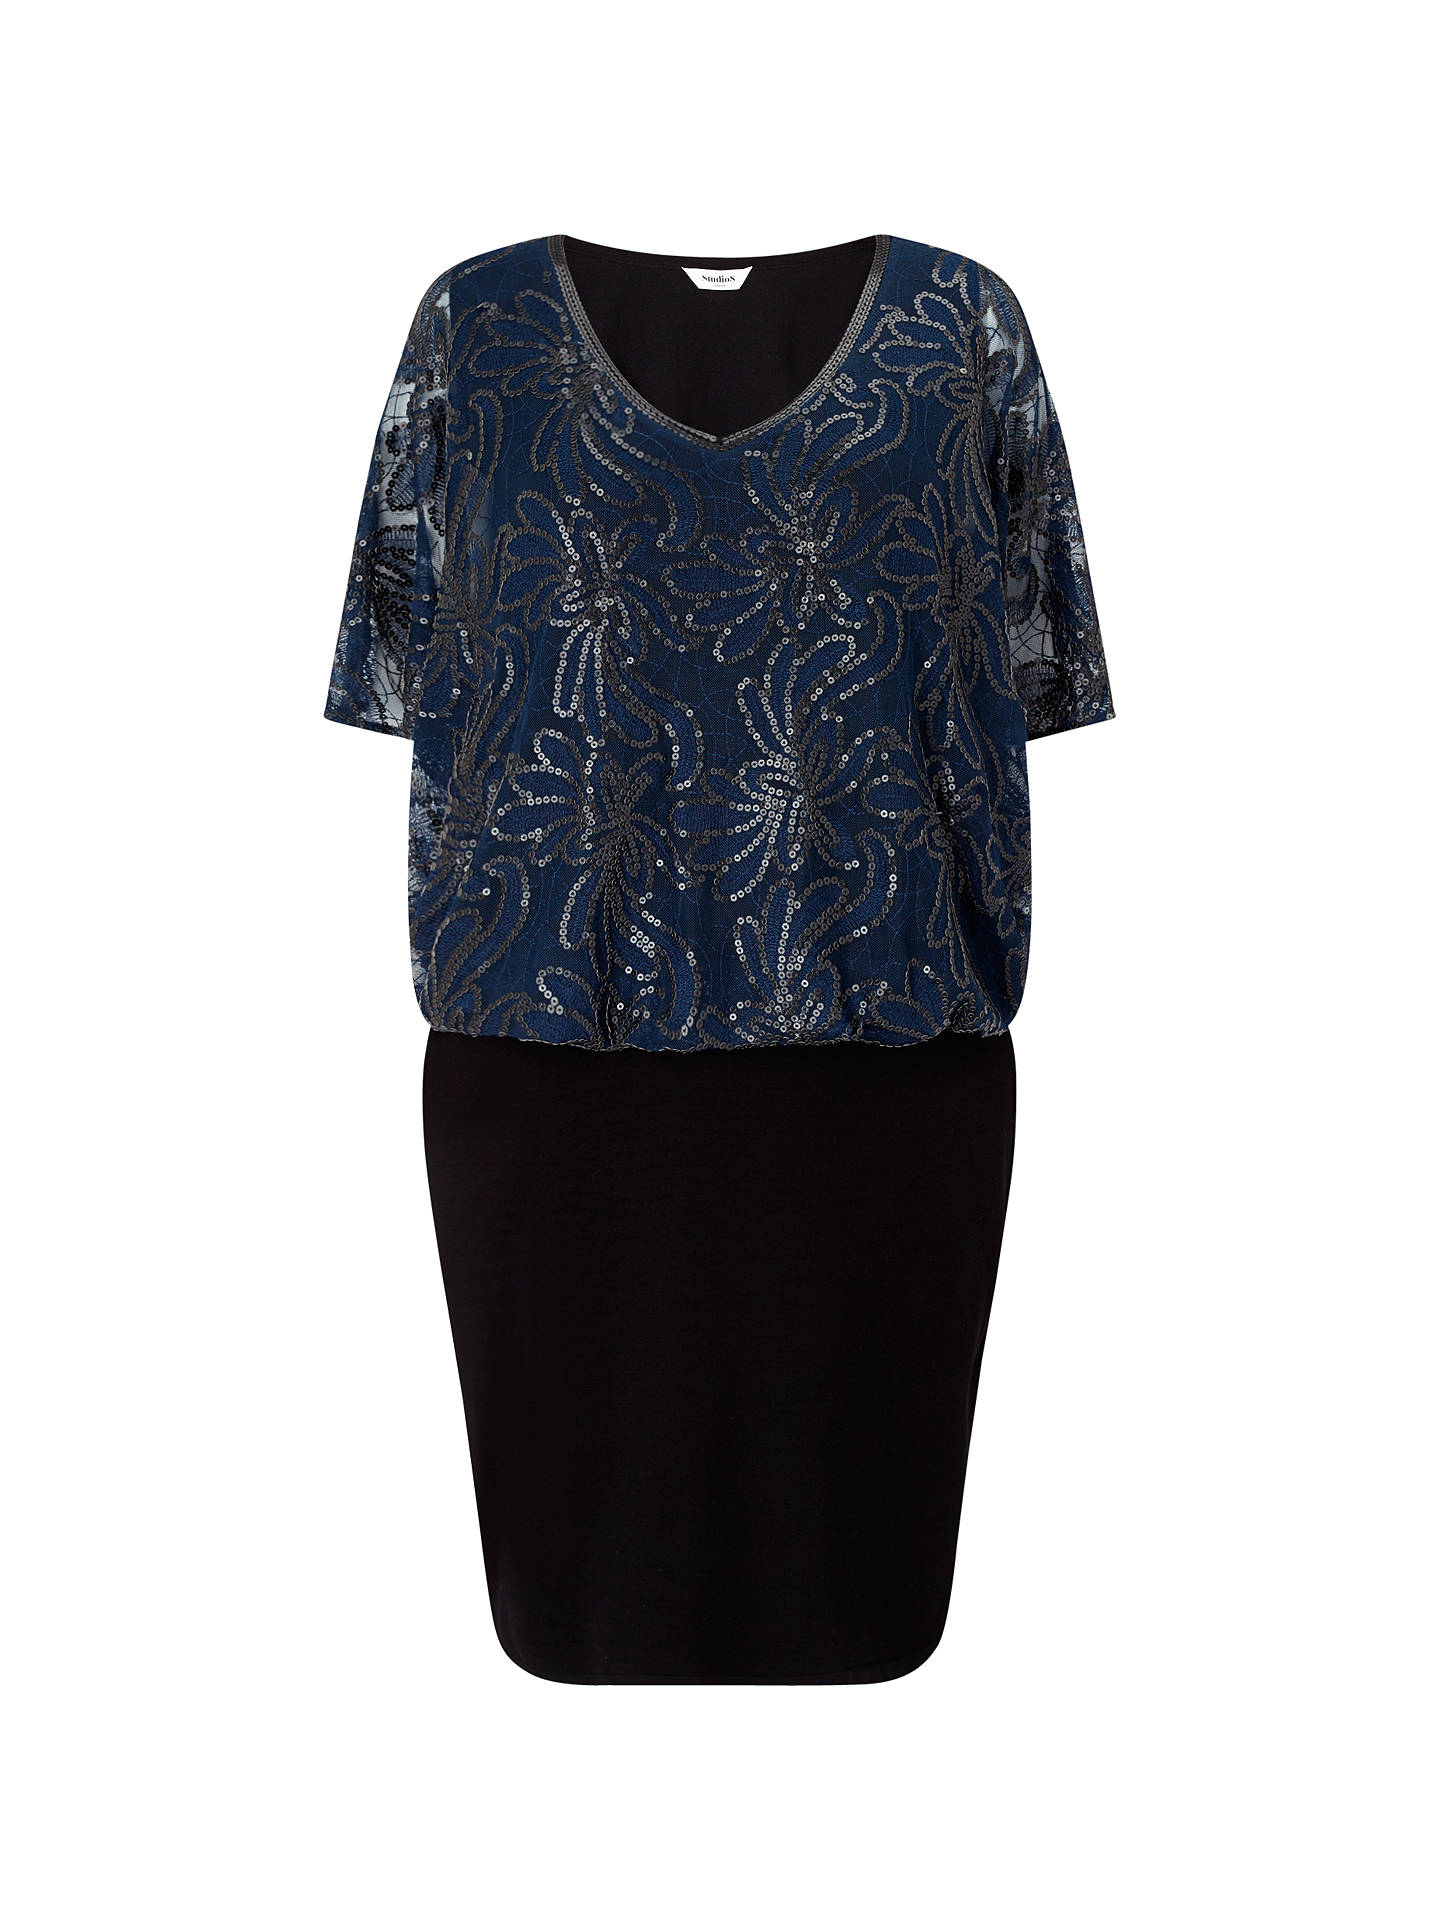 BuyStudio 8 Roselle Dress, Navy/Black, 12 Online at johnlewis.com